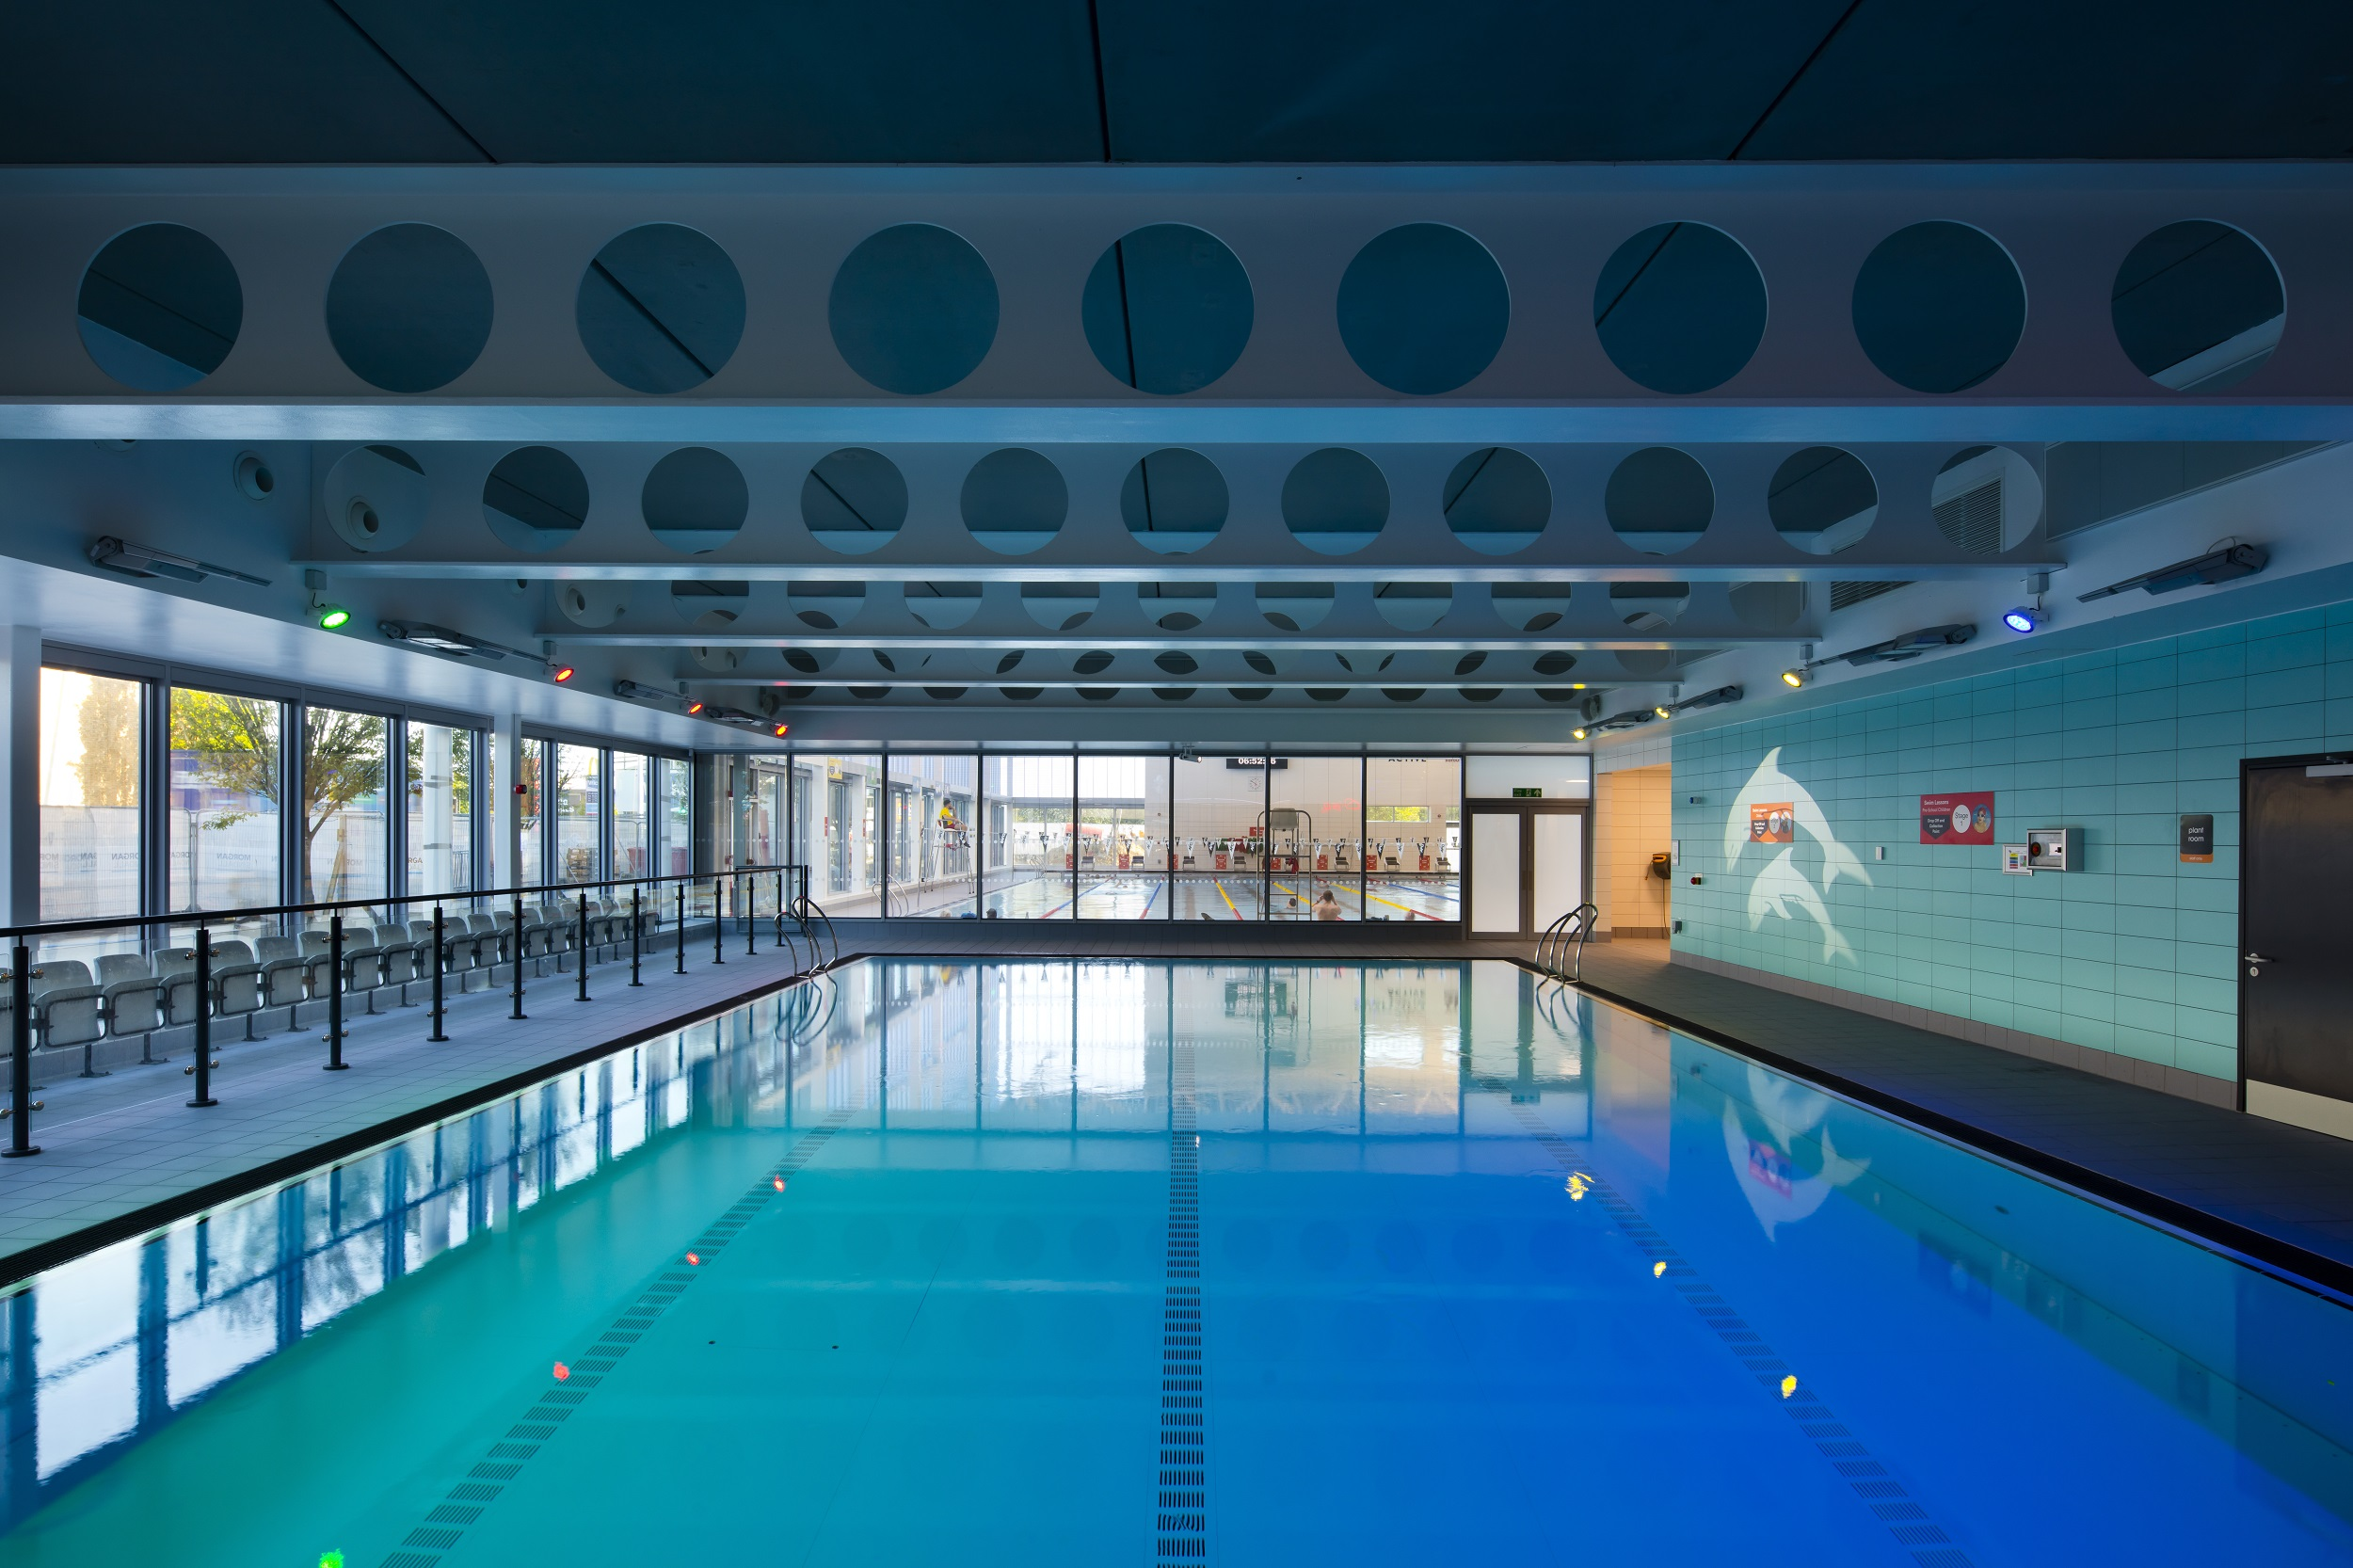 HOW CAN DESIGN MAKE LEISURE CENTRES MORE INCLUSIVE?